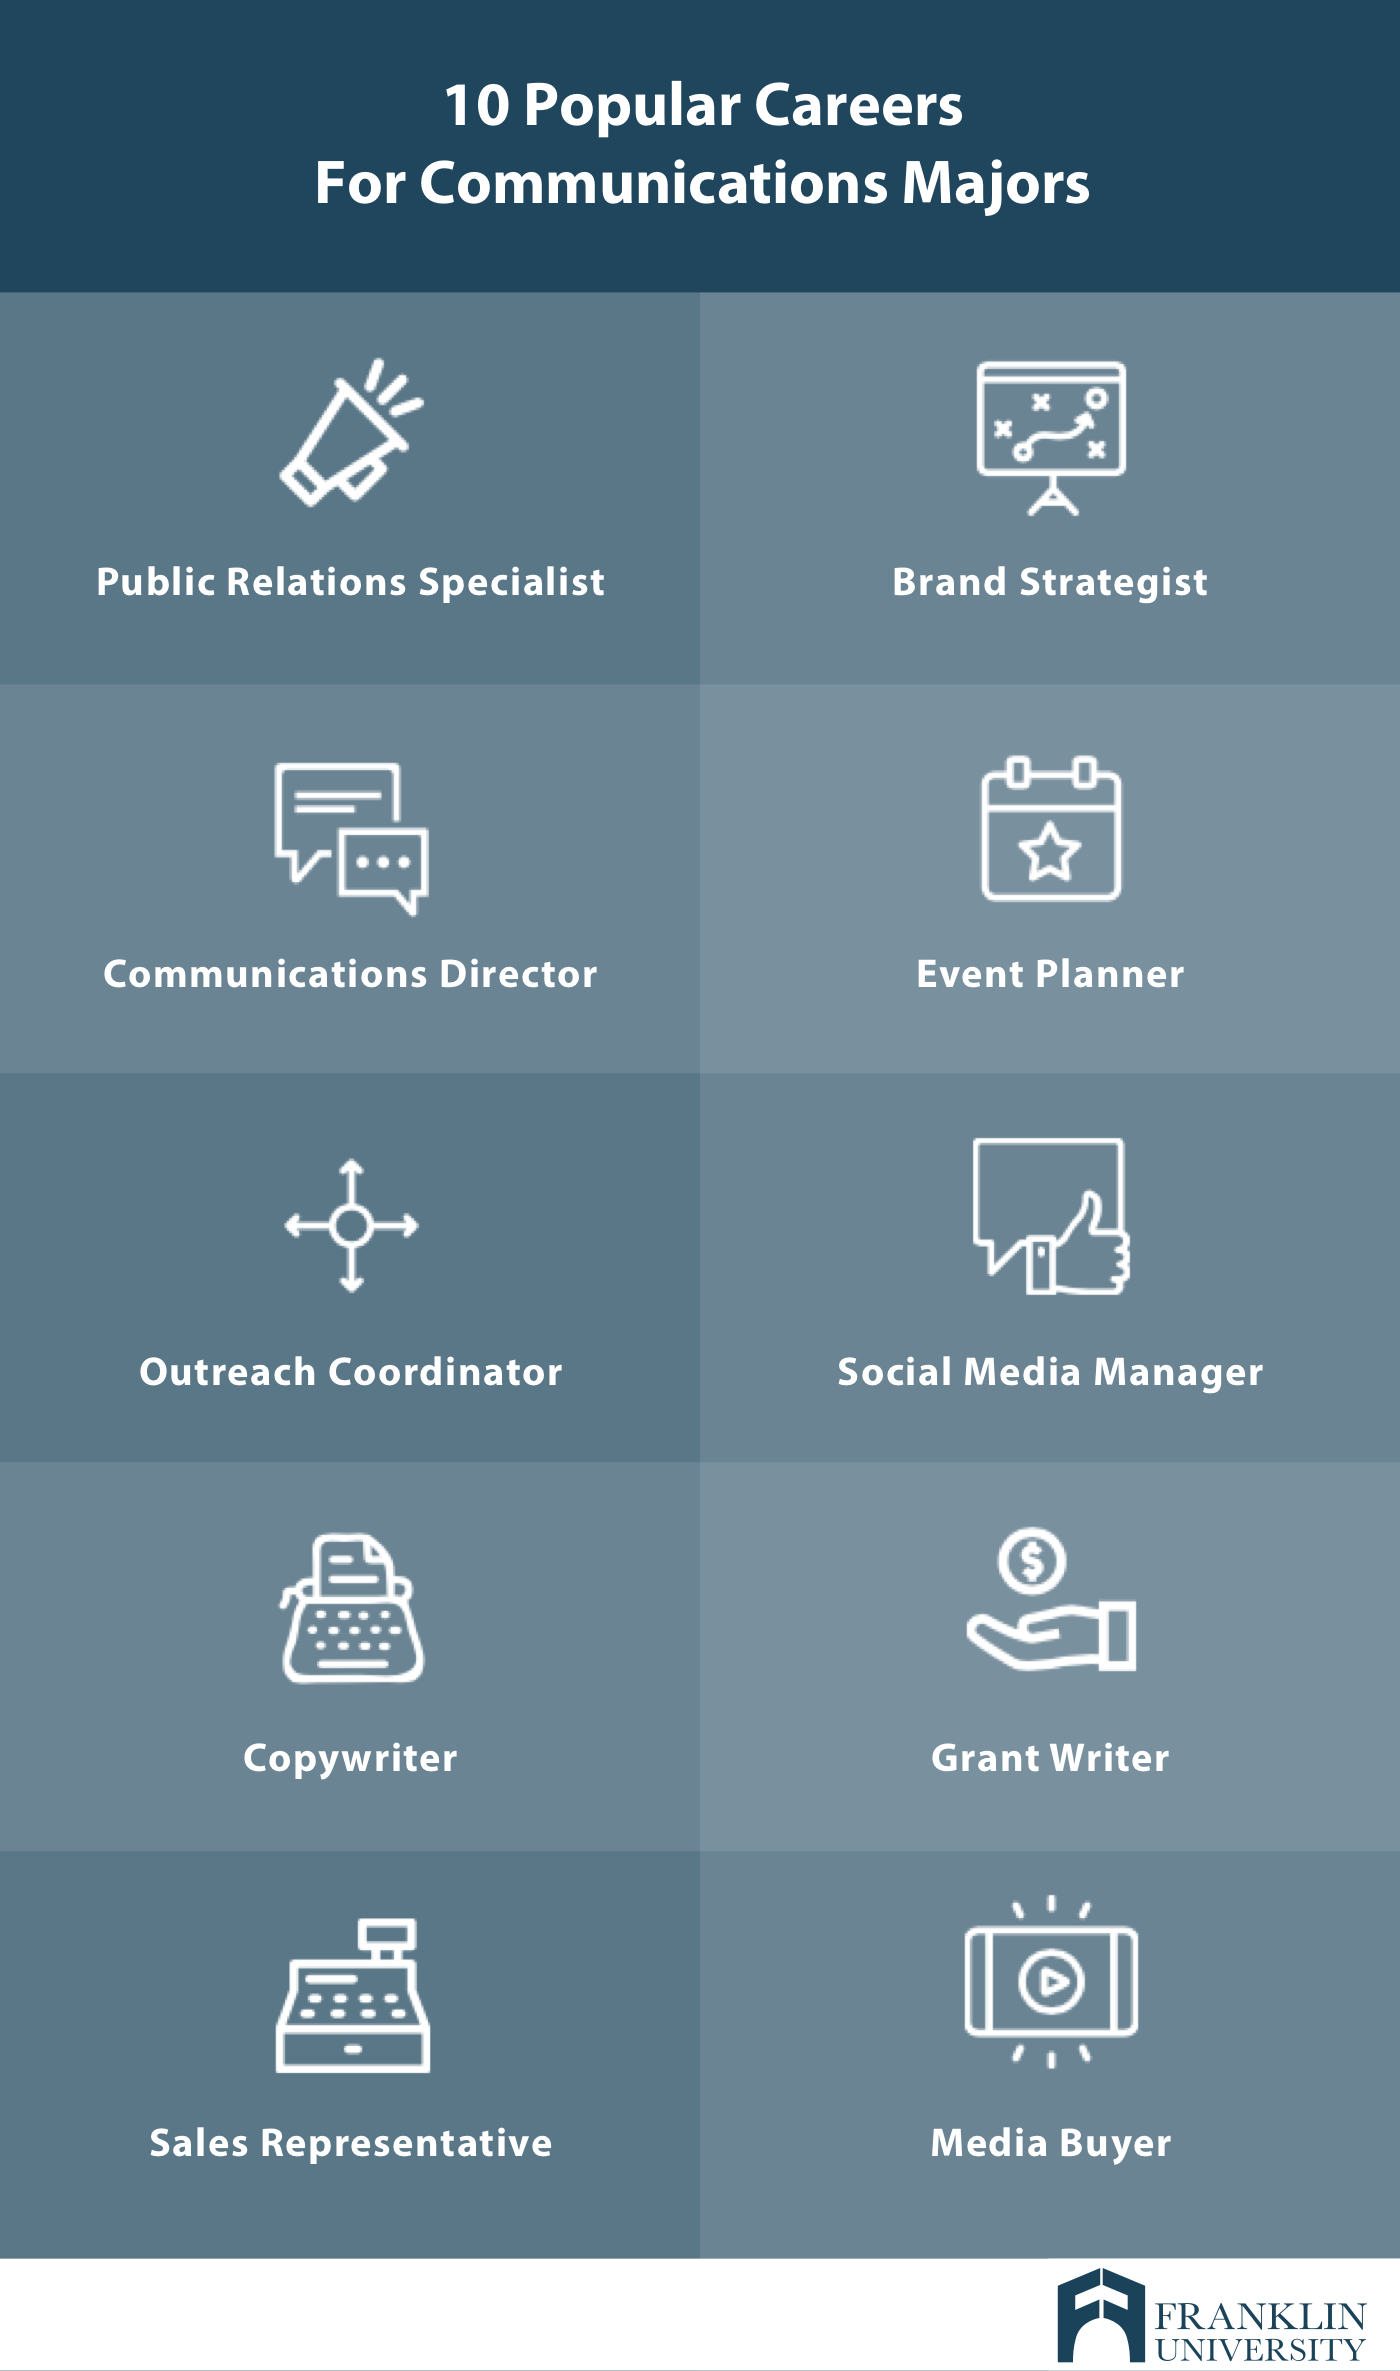 graphic describing 10 popular careers for communications majors